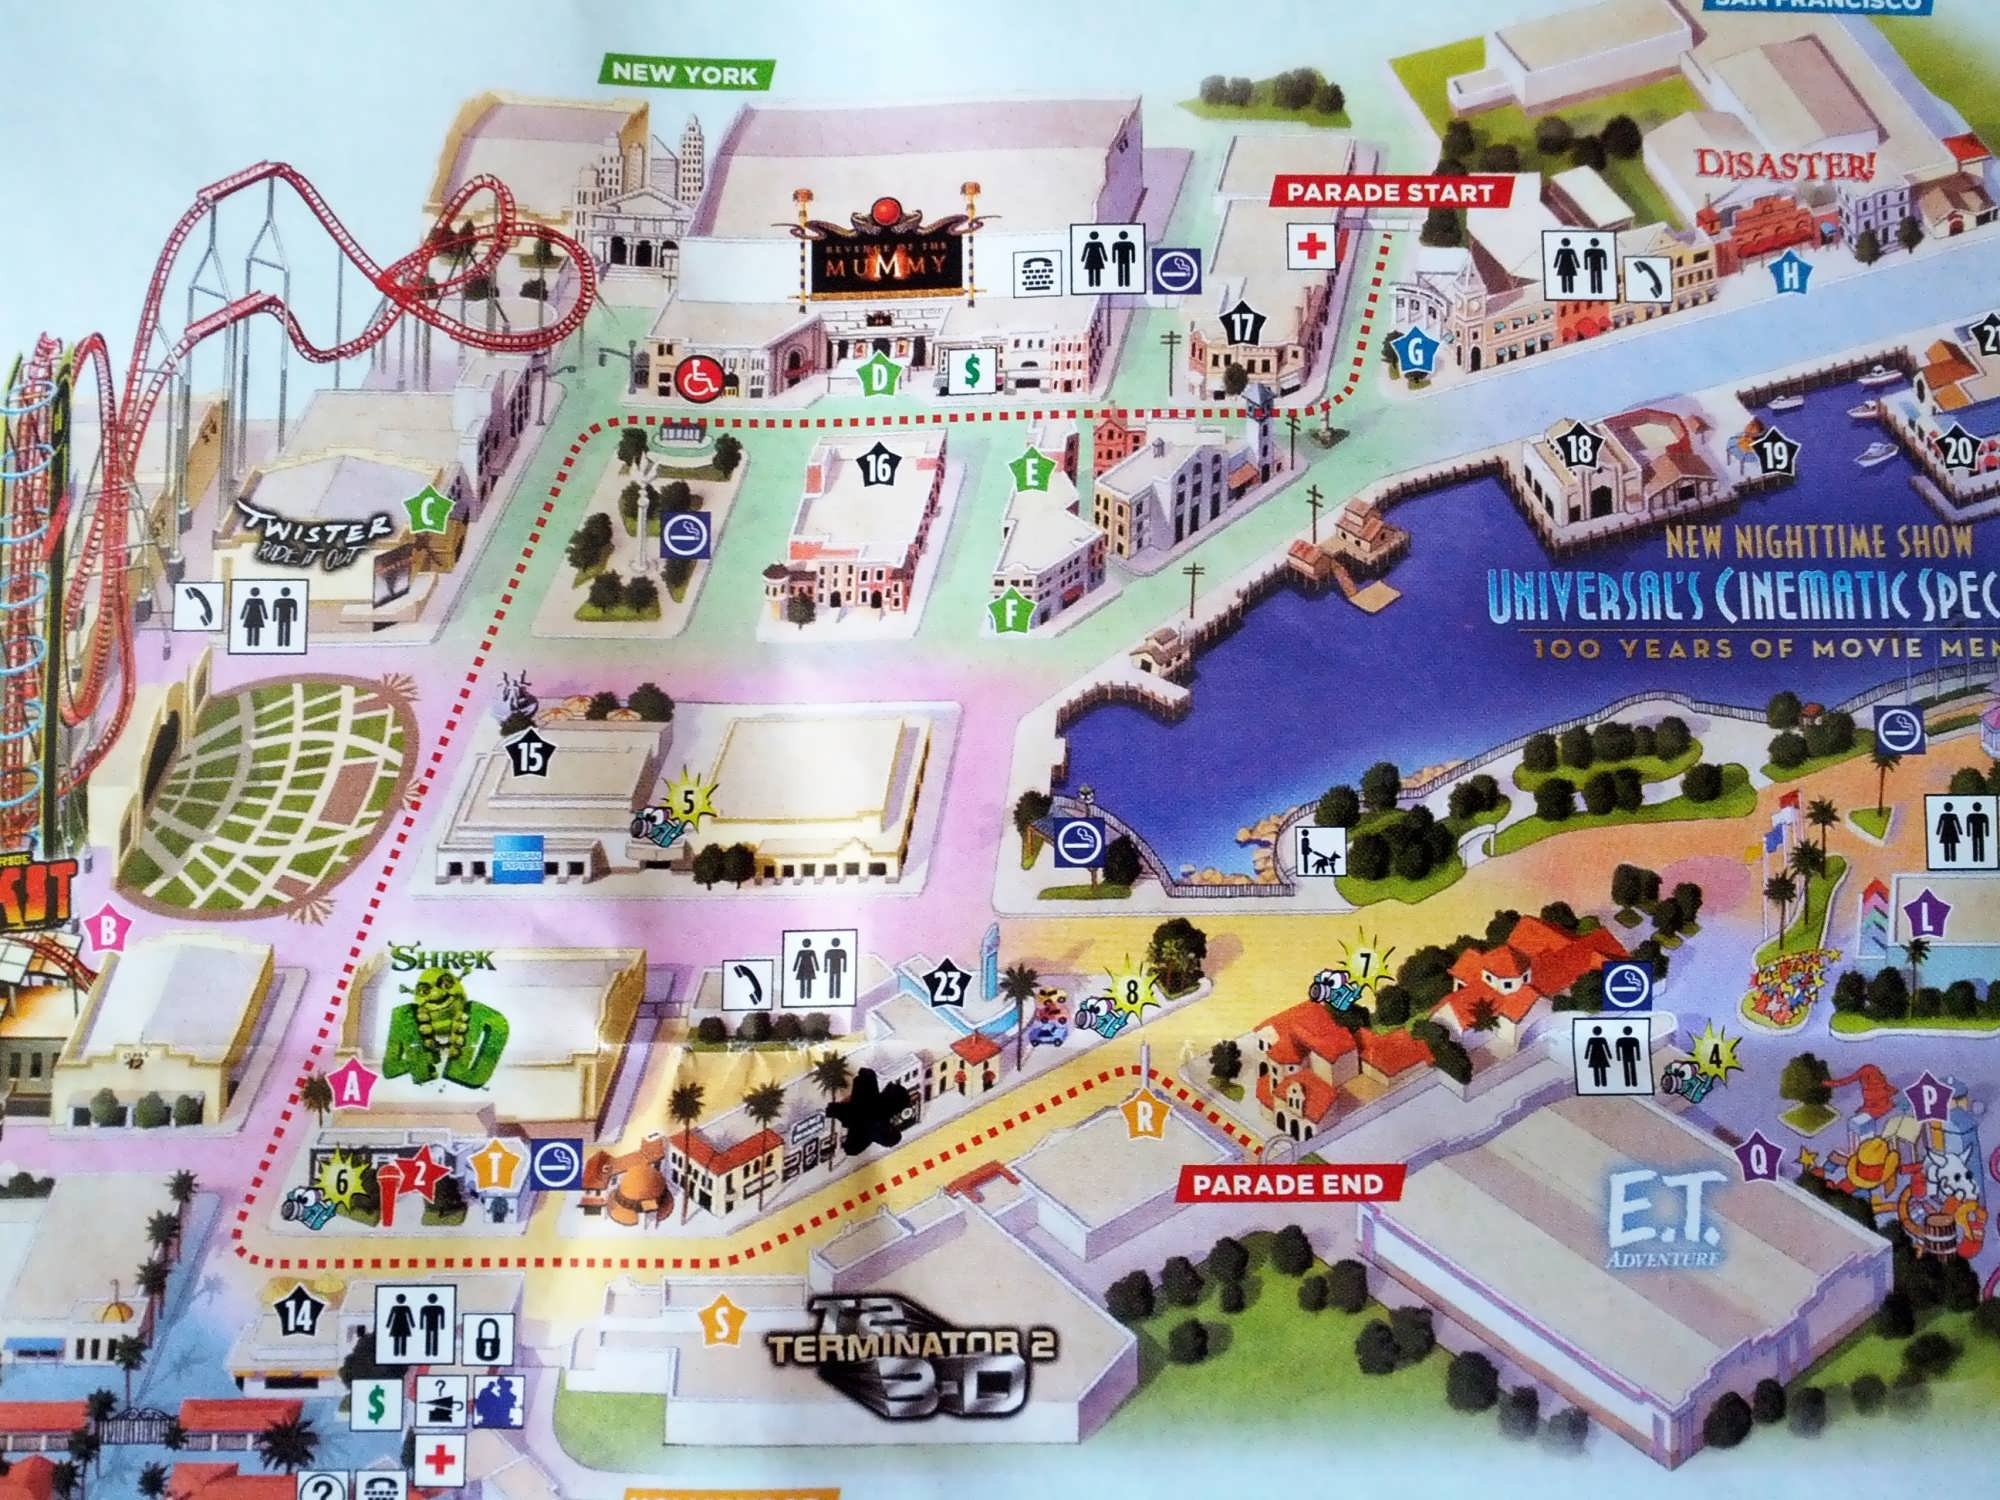 Universal's Superstar Parade: Map of the parade route